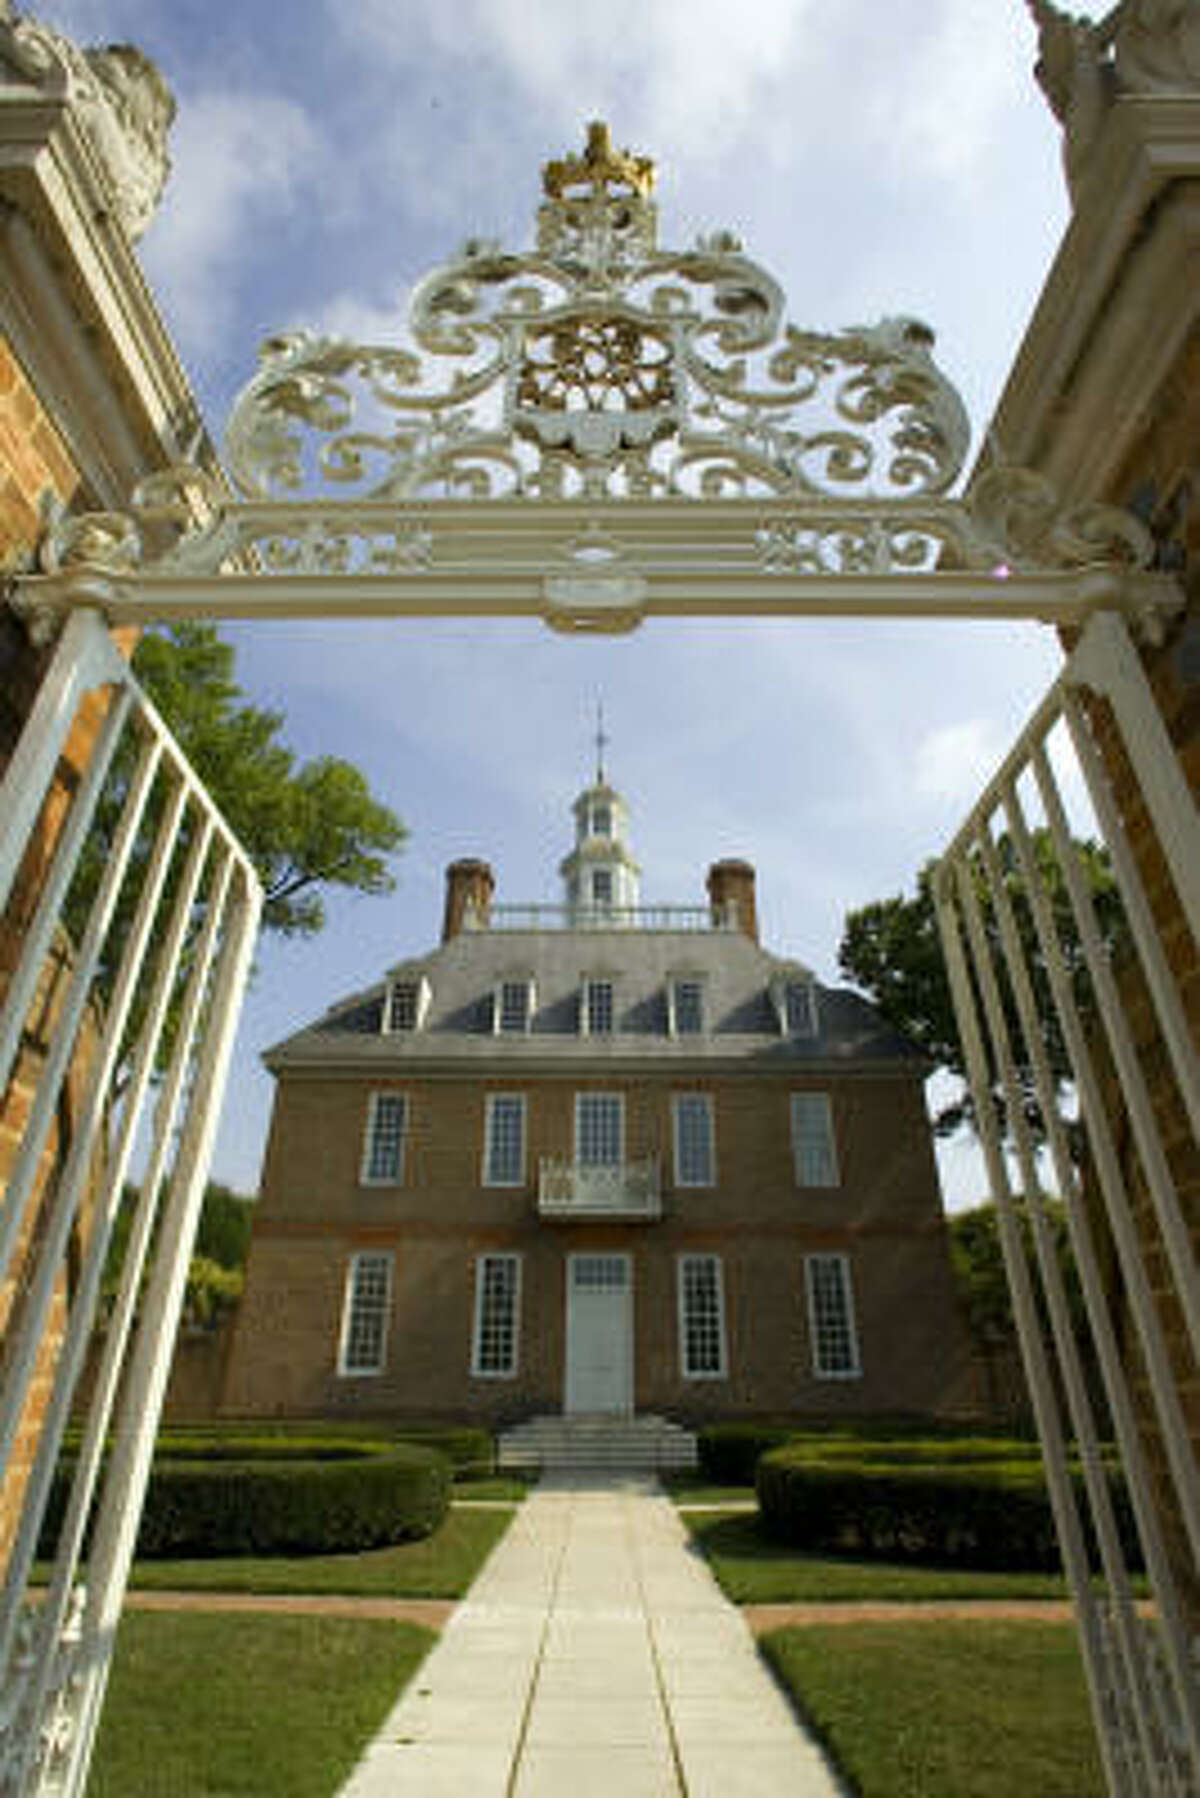 A garden tour begins at the Governor's Palace in Colonial Williamsburg.